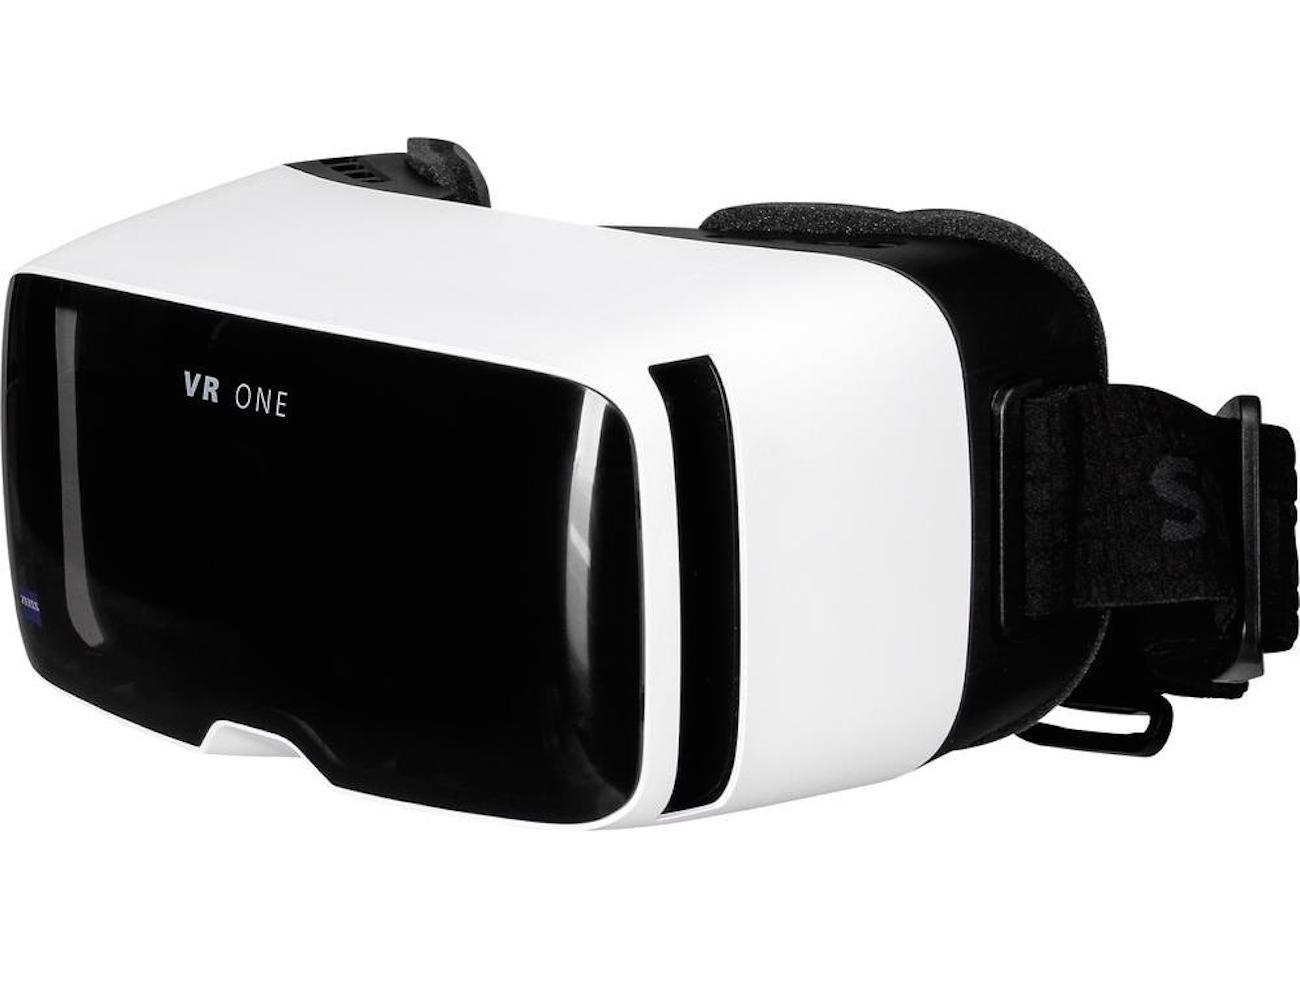 Zeiss VR ONE Smartphone Compatible Virtual Reality Headset ...